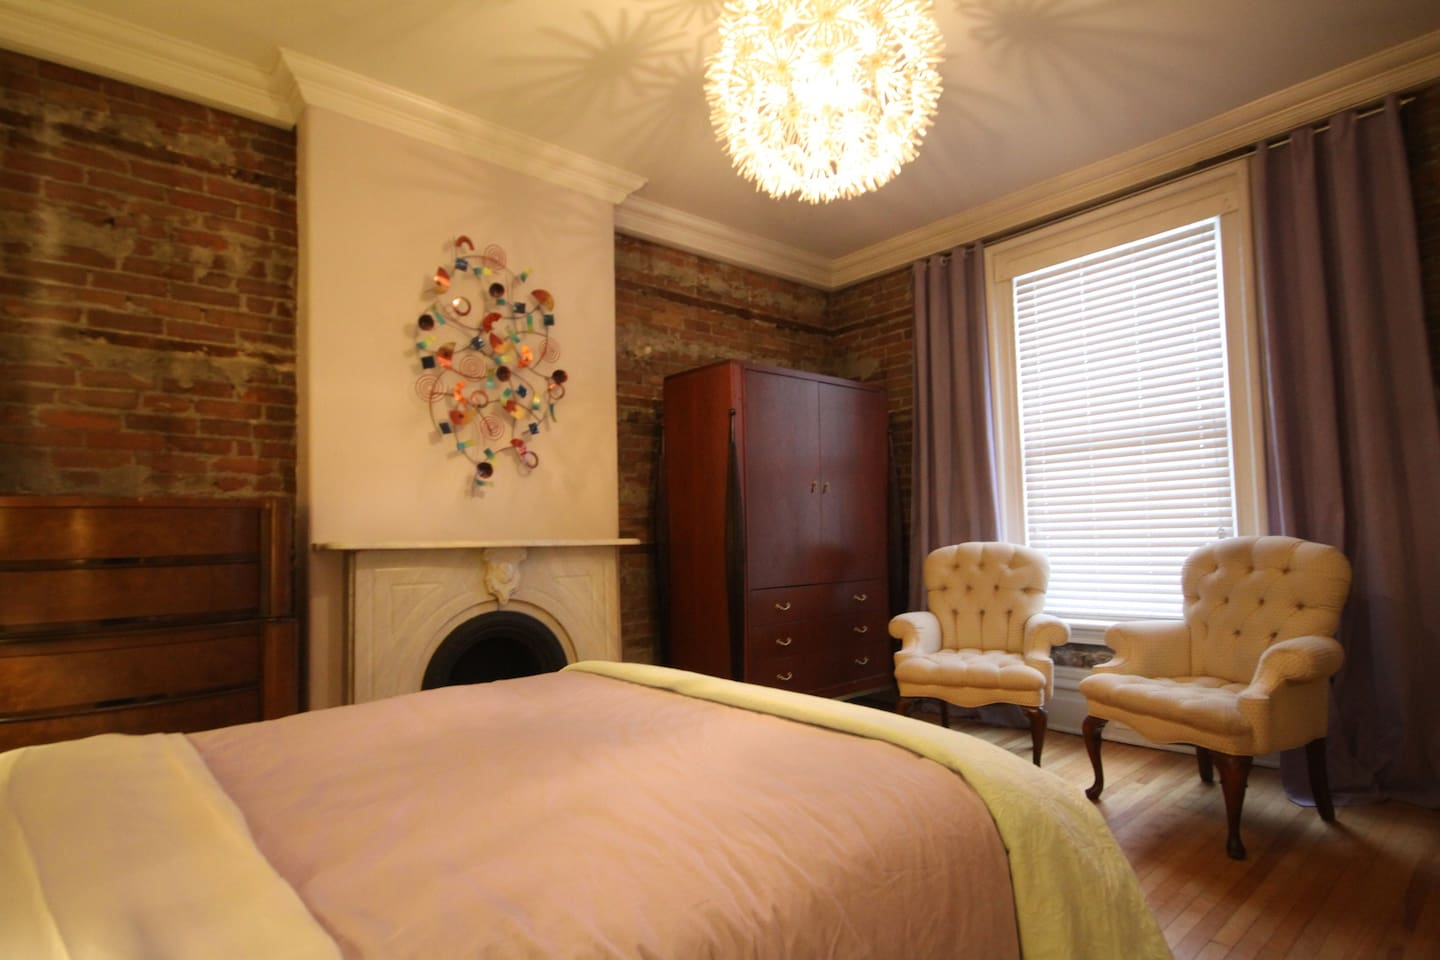 Bedroom #1 of 3 queen bedrooms in this 1871 heritage mansion converted into condos.